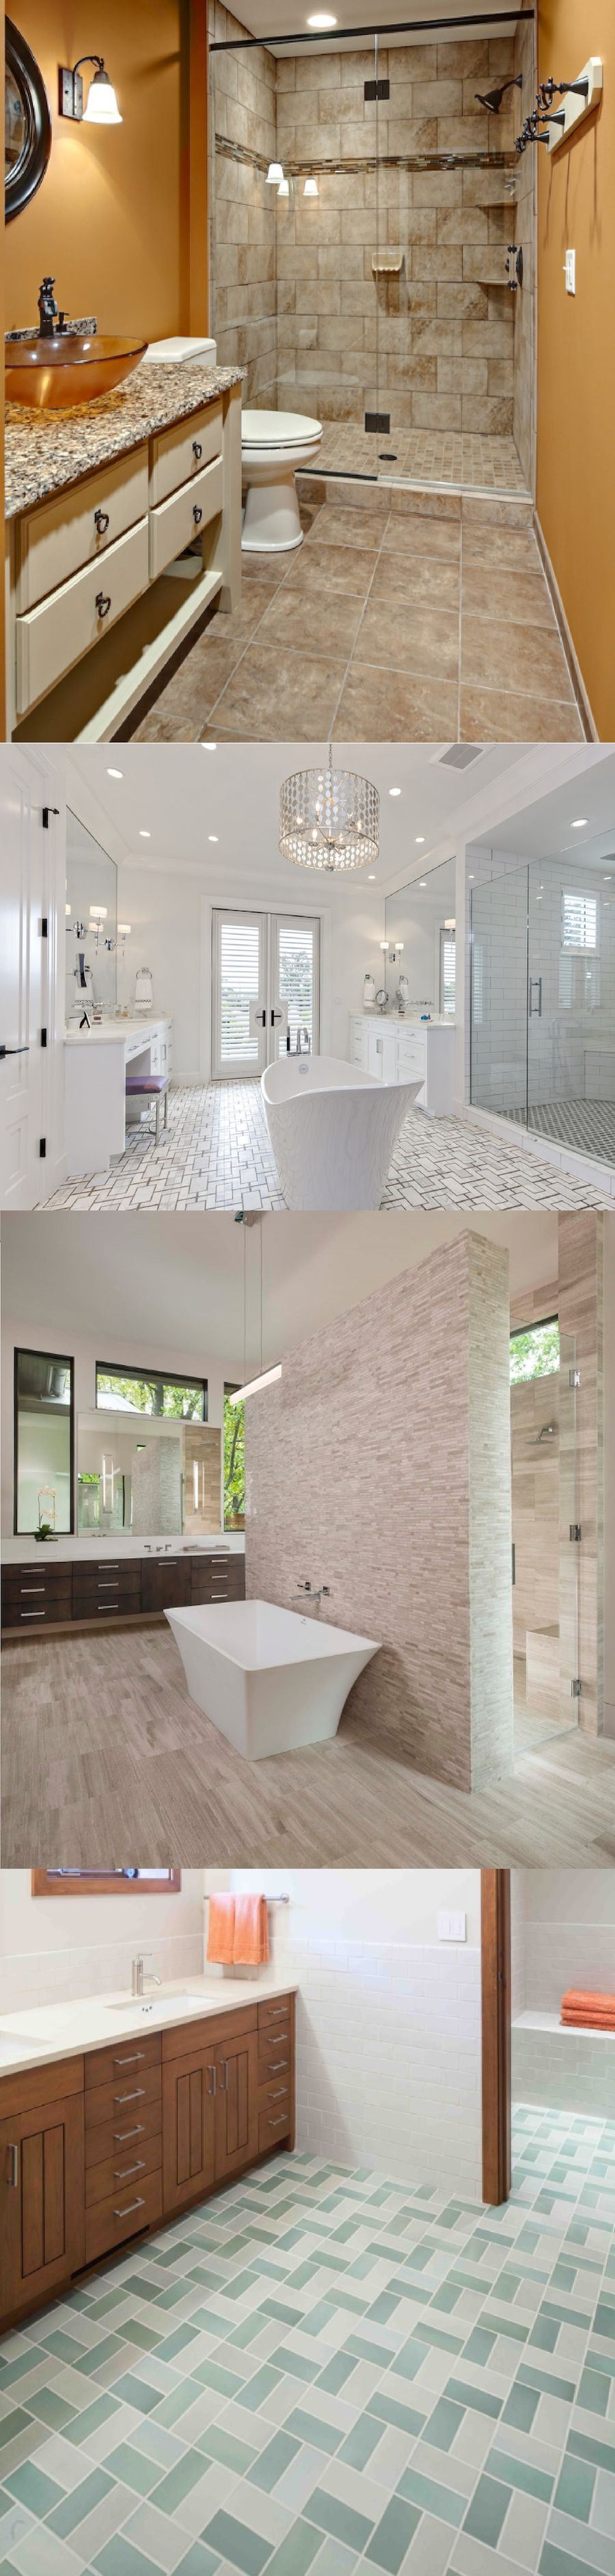 pictures of master bathrooms